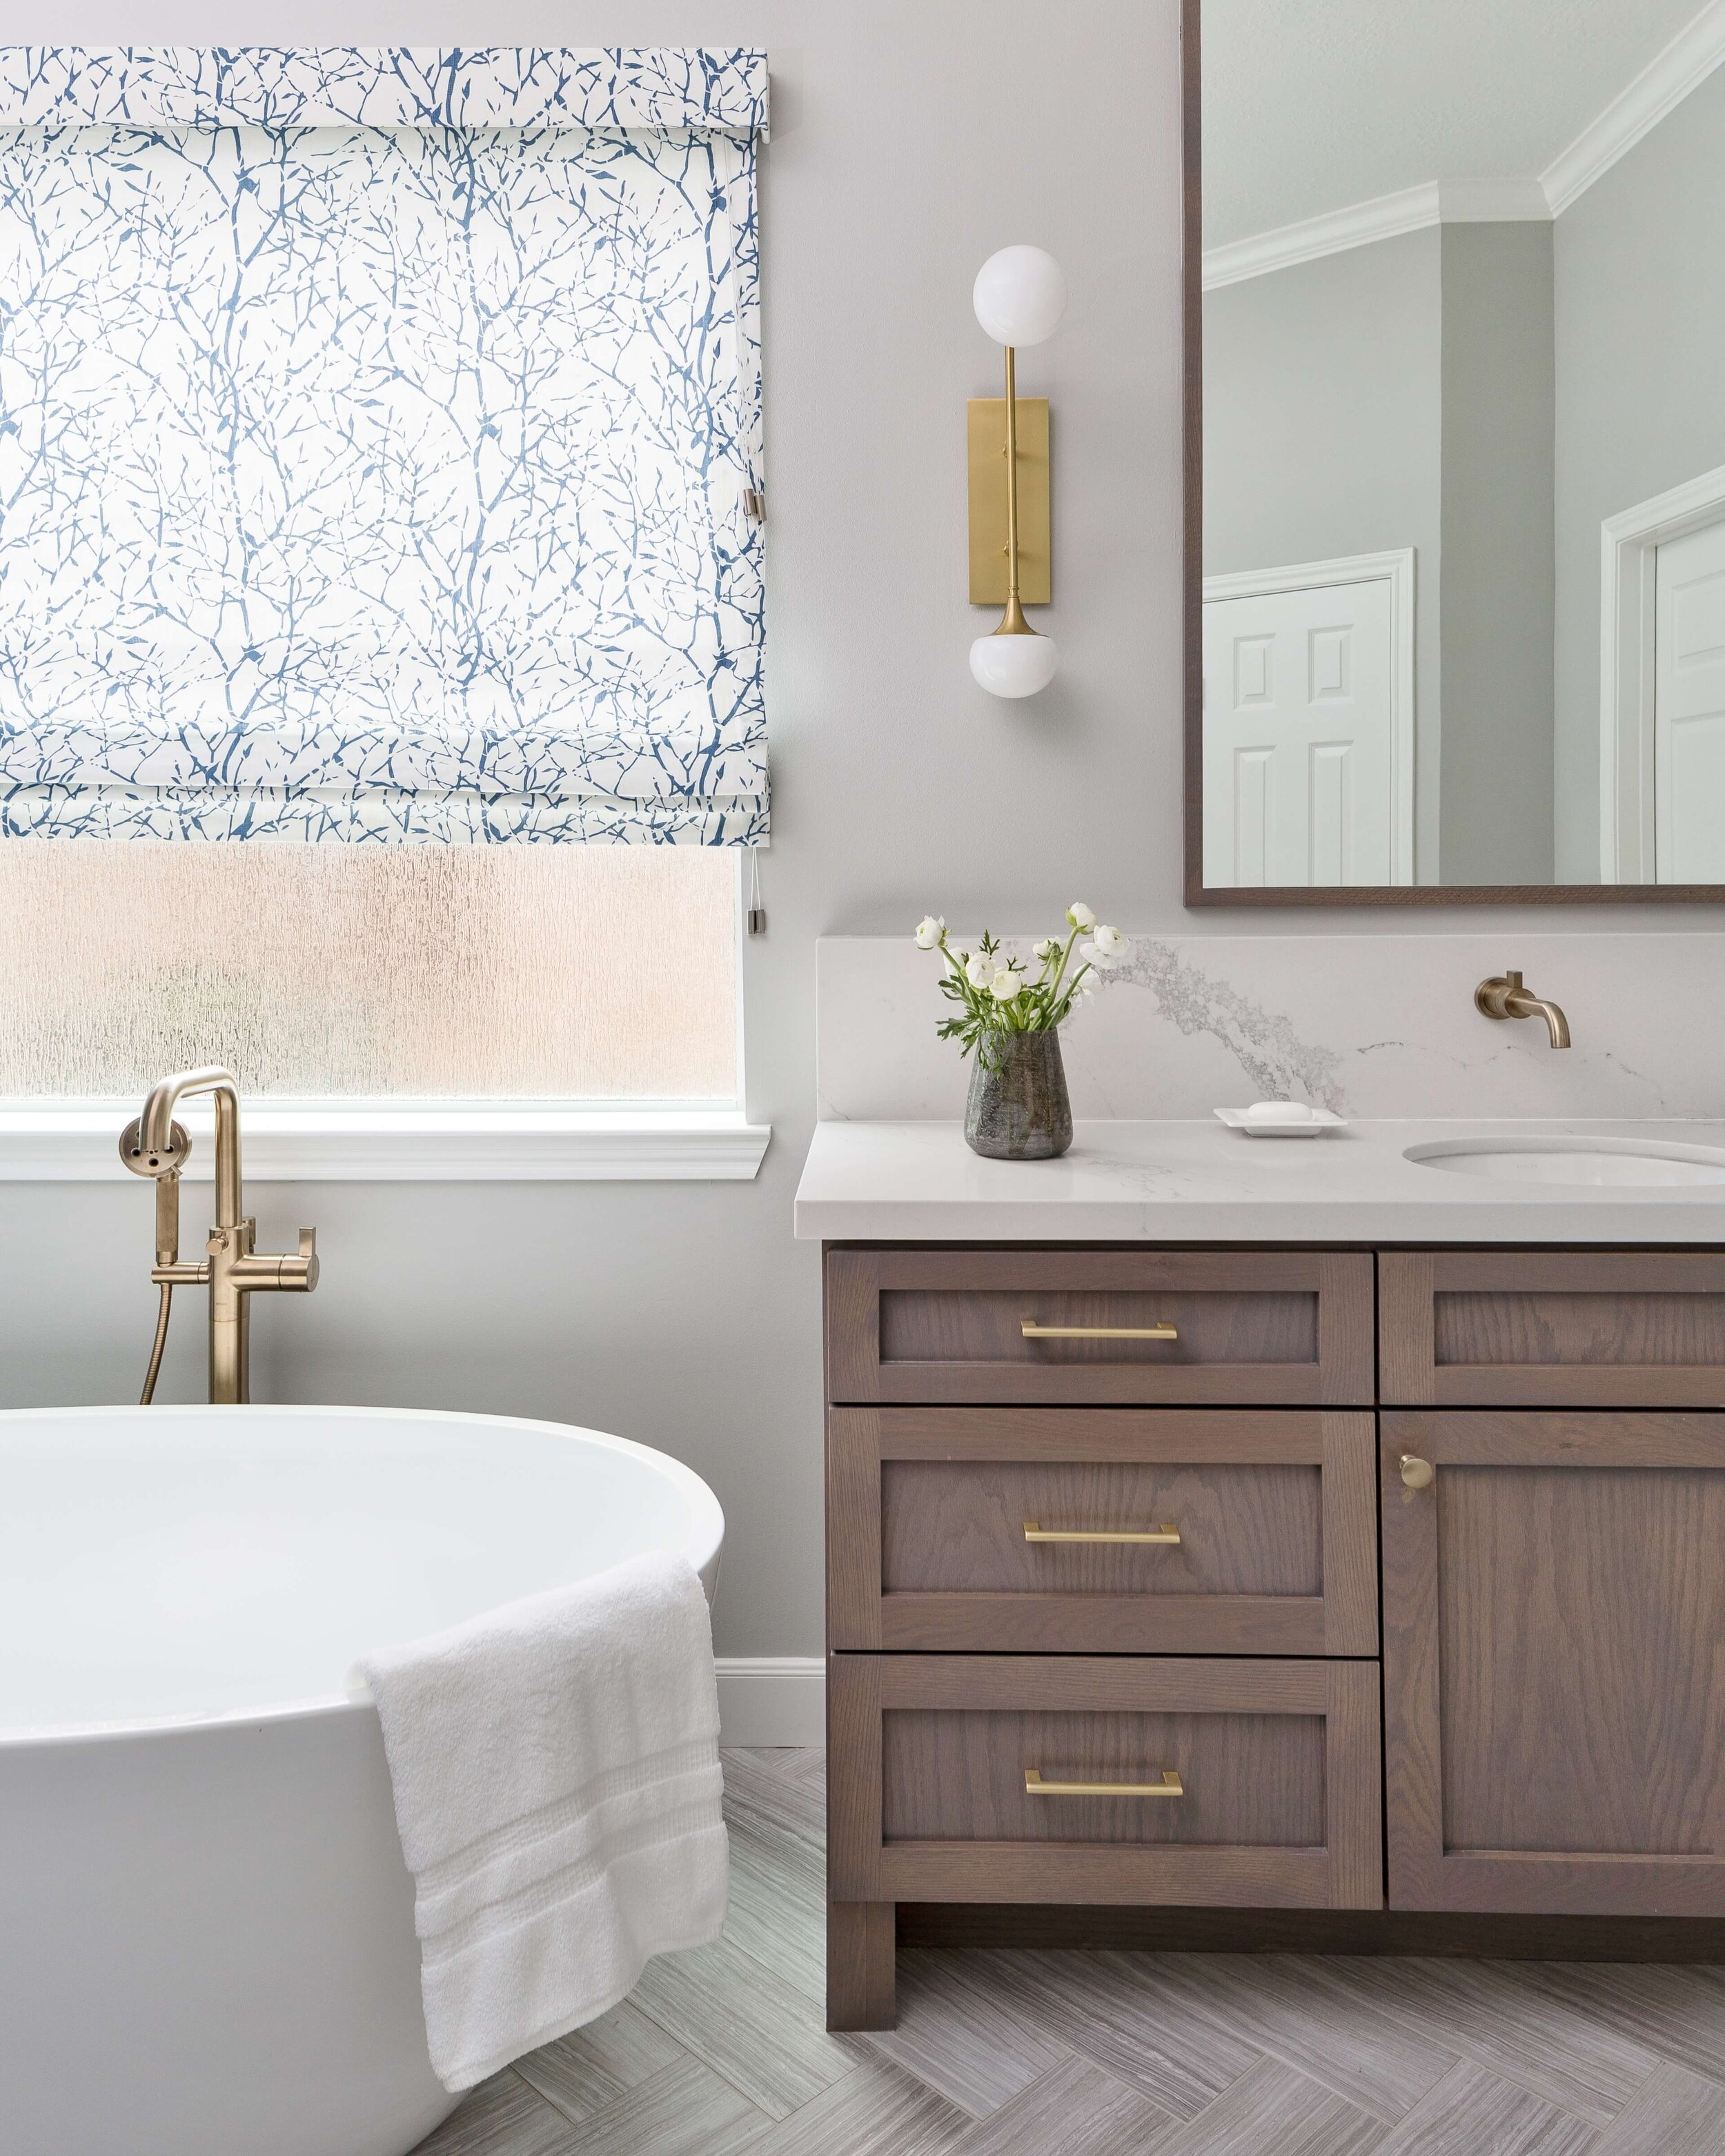 Selecting Cabinet Pulls And Knobs, Bathroom Drawer Pulls